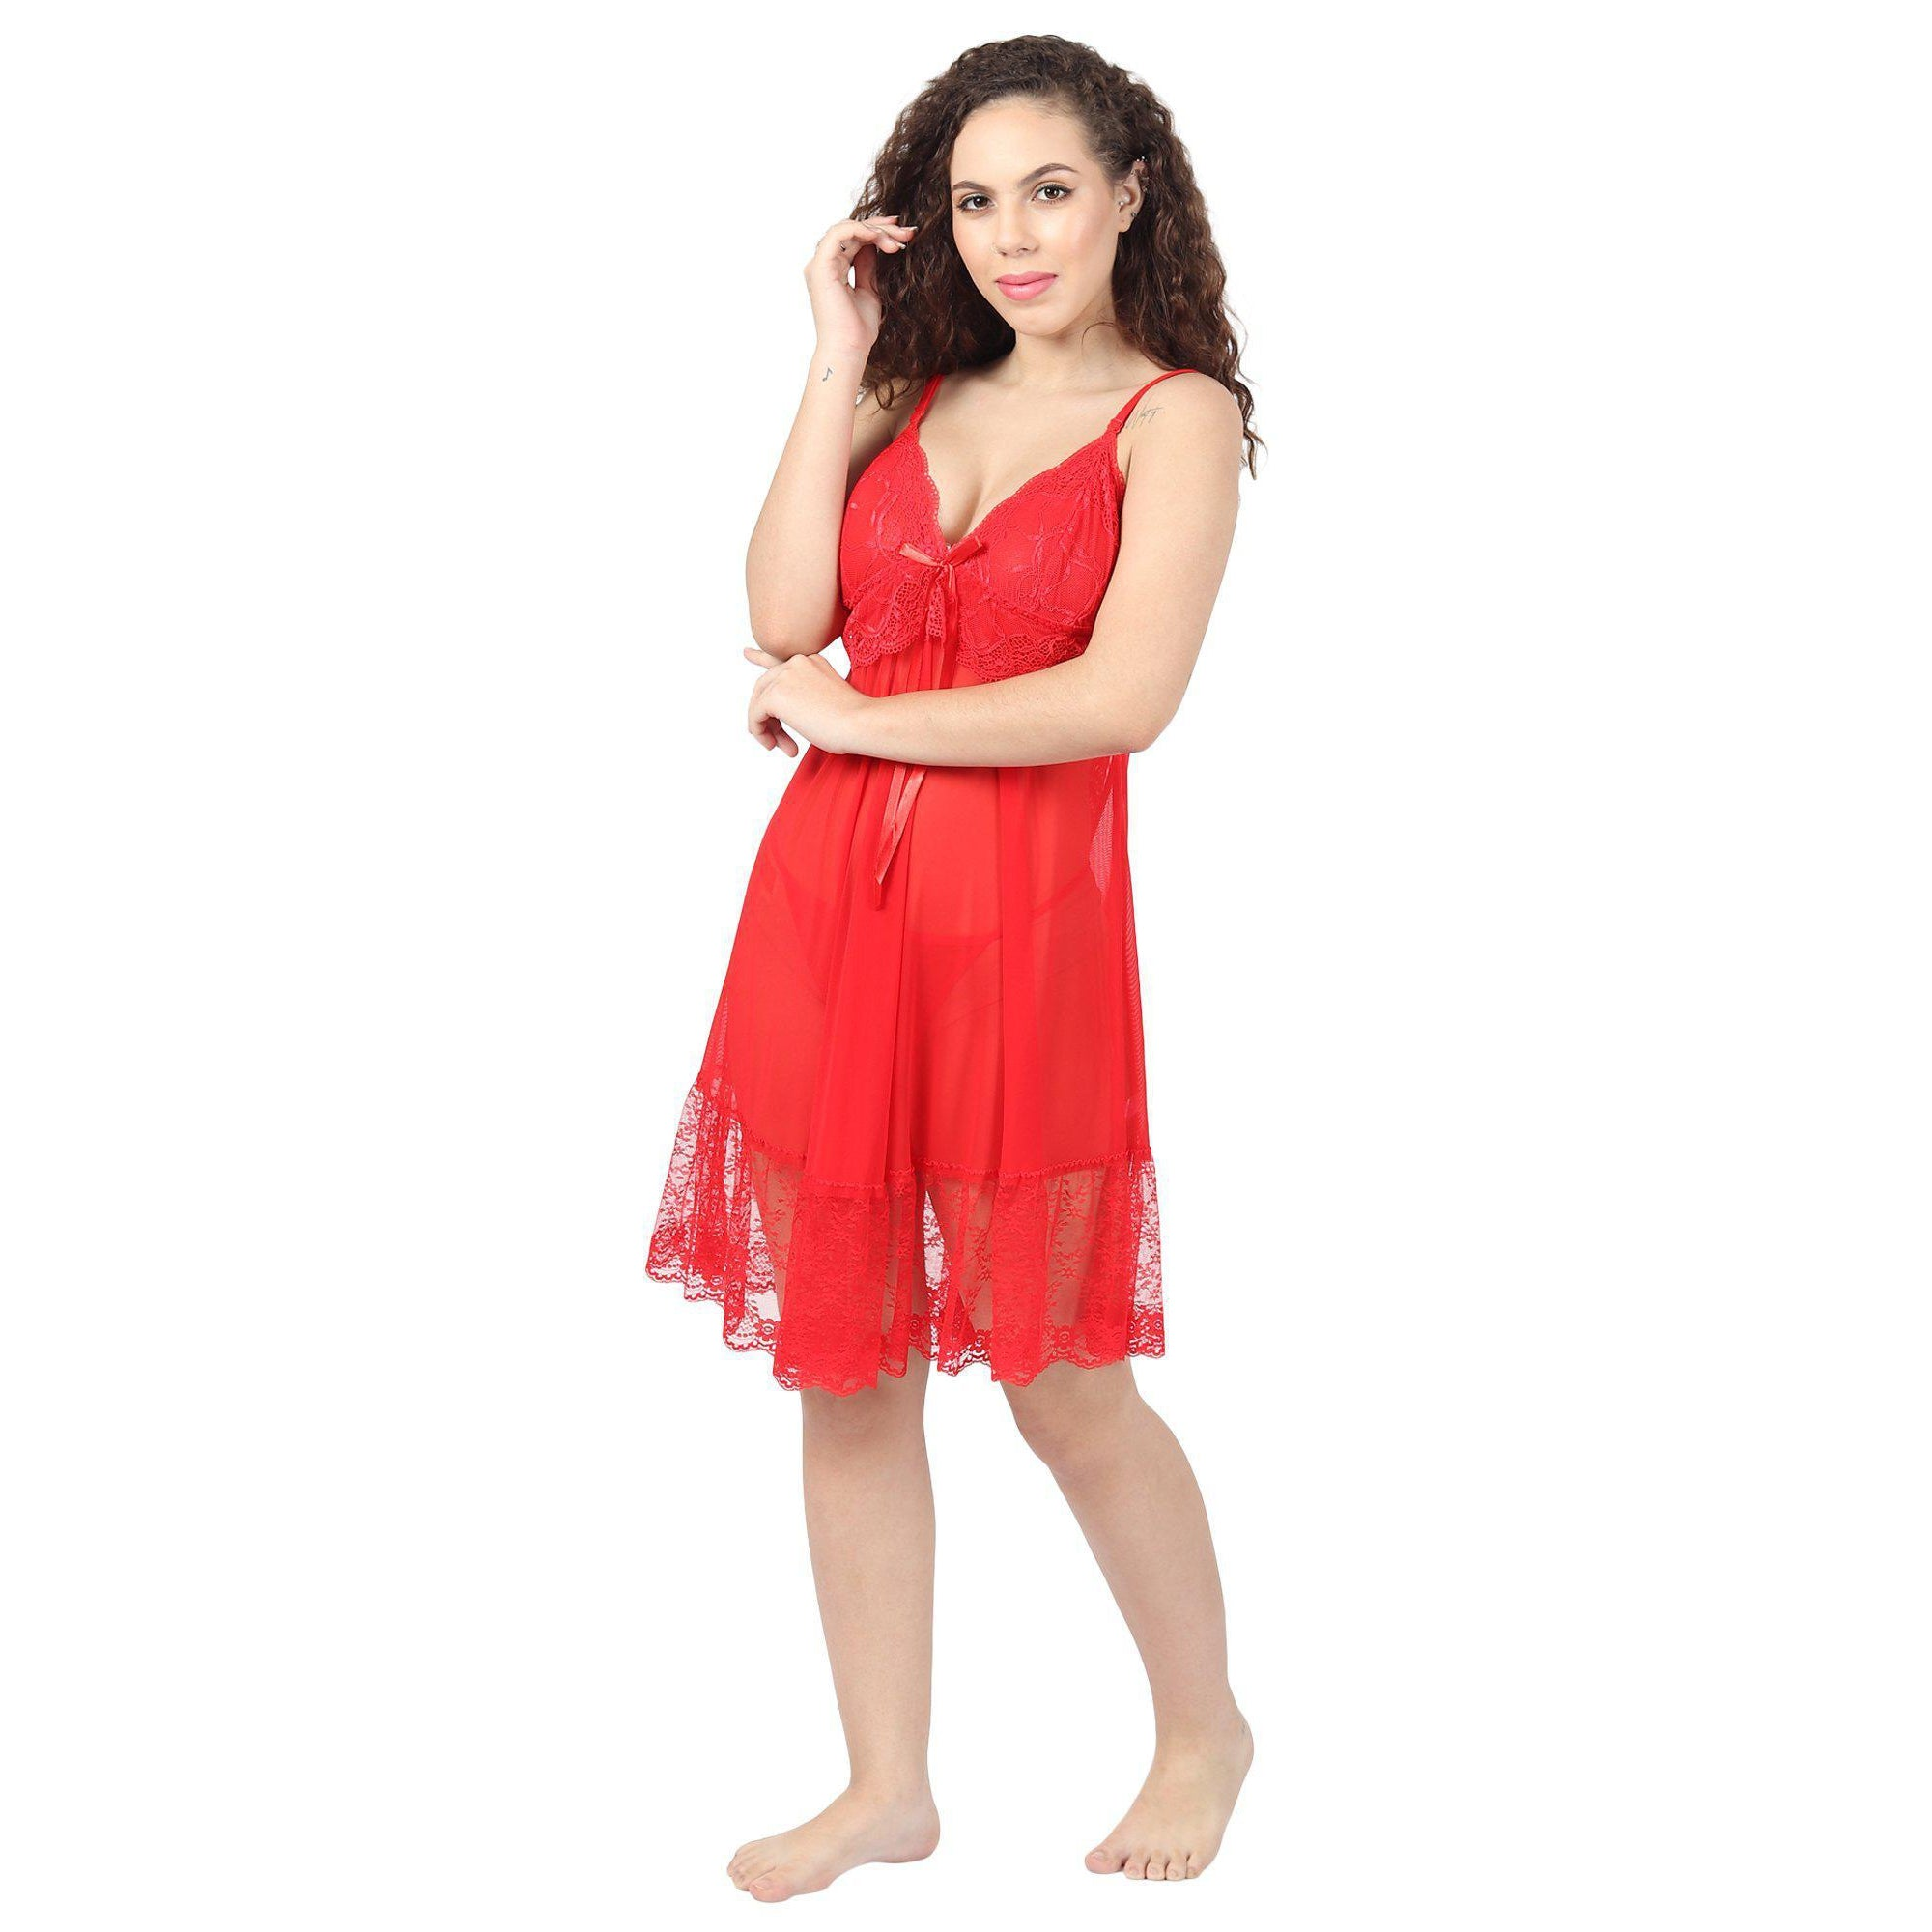 Red-Orange Short Night Dress With Lacy Cups